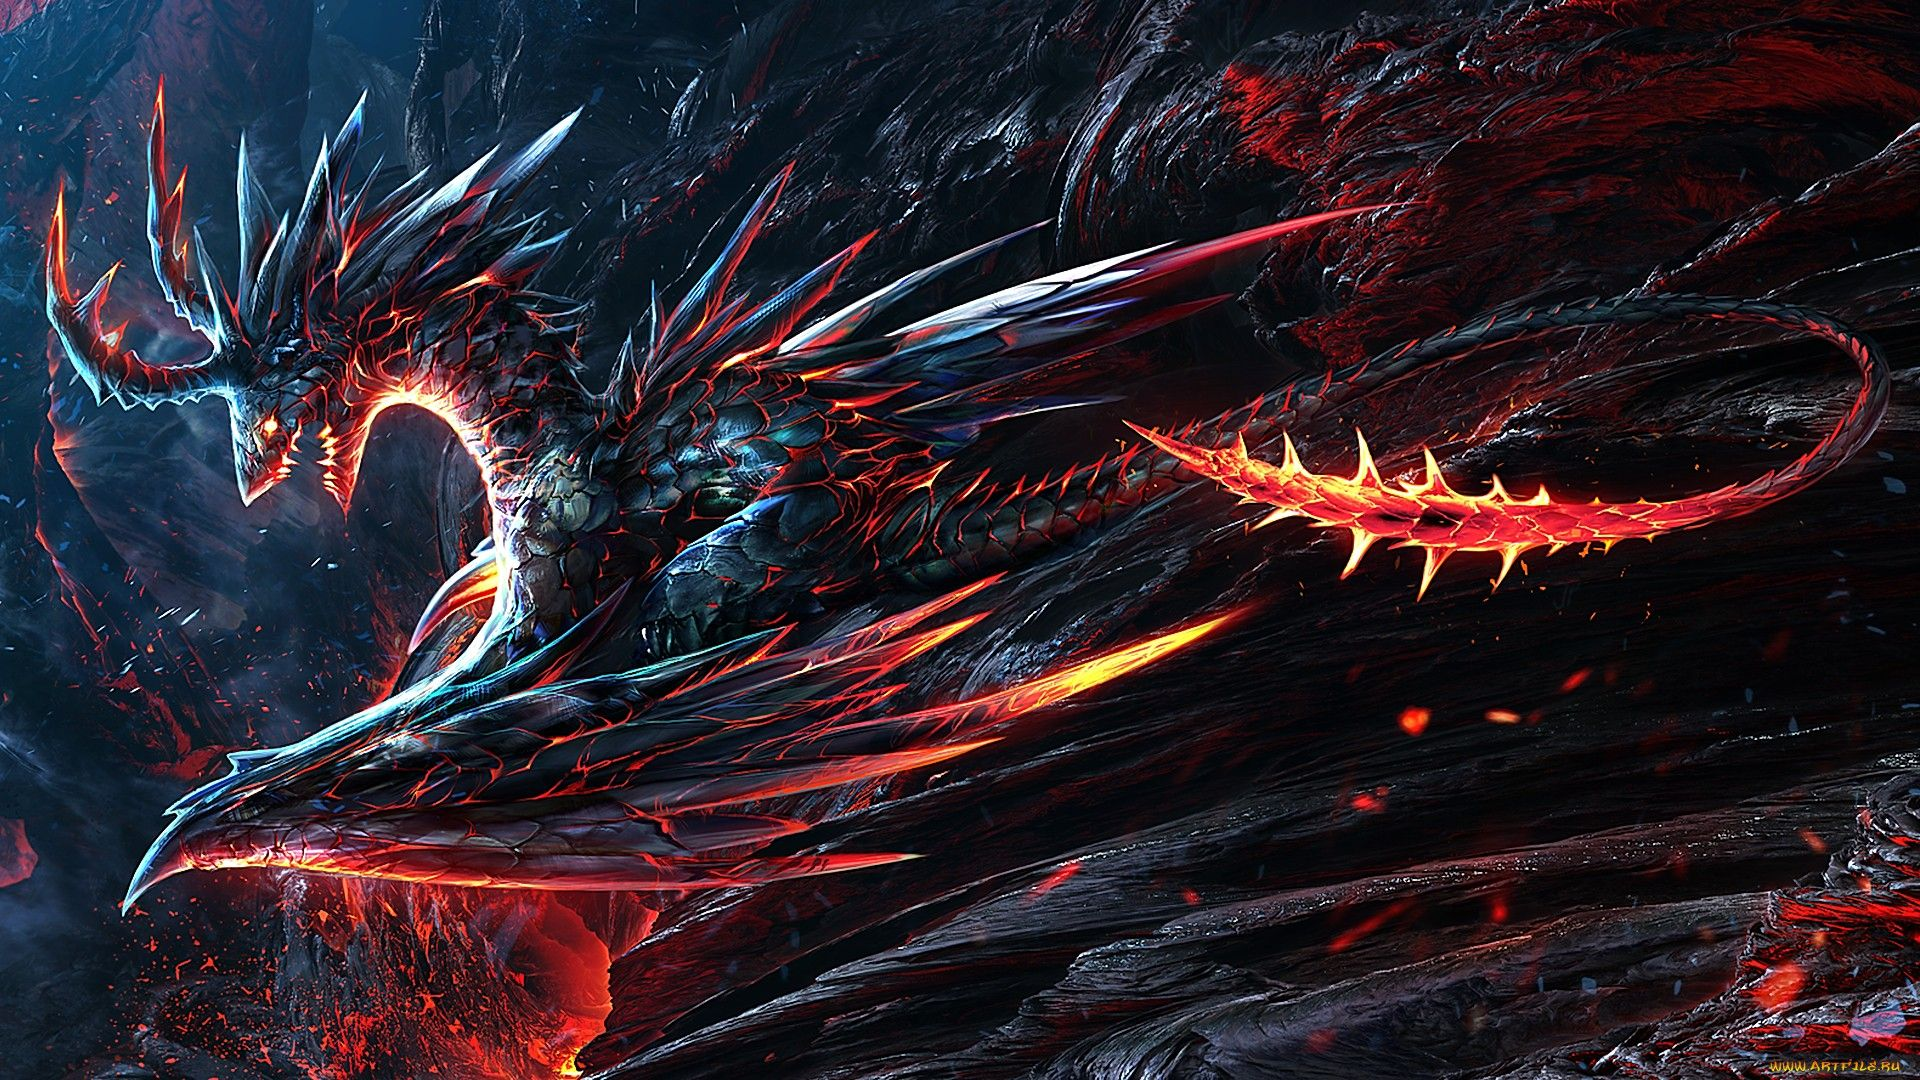 Badass Dragon Wallpaper 1080p Hd Mario Dragon Dark Backgrounds